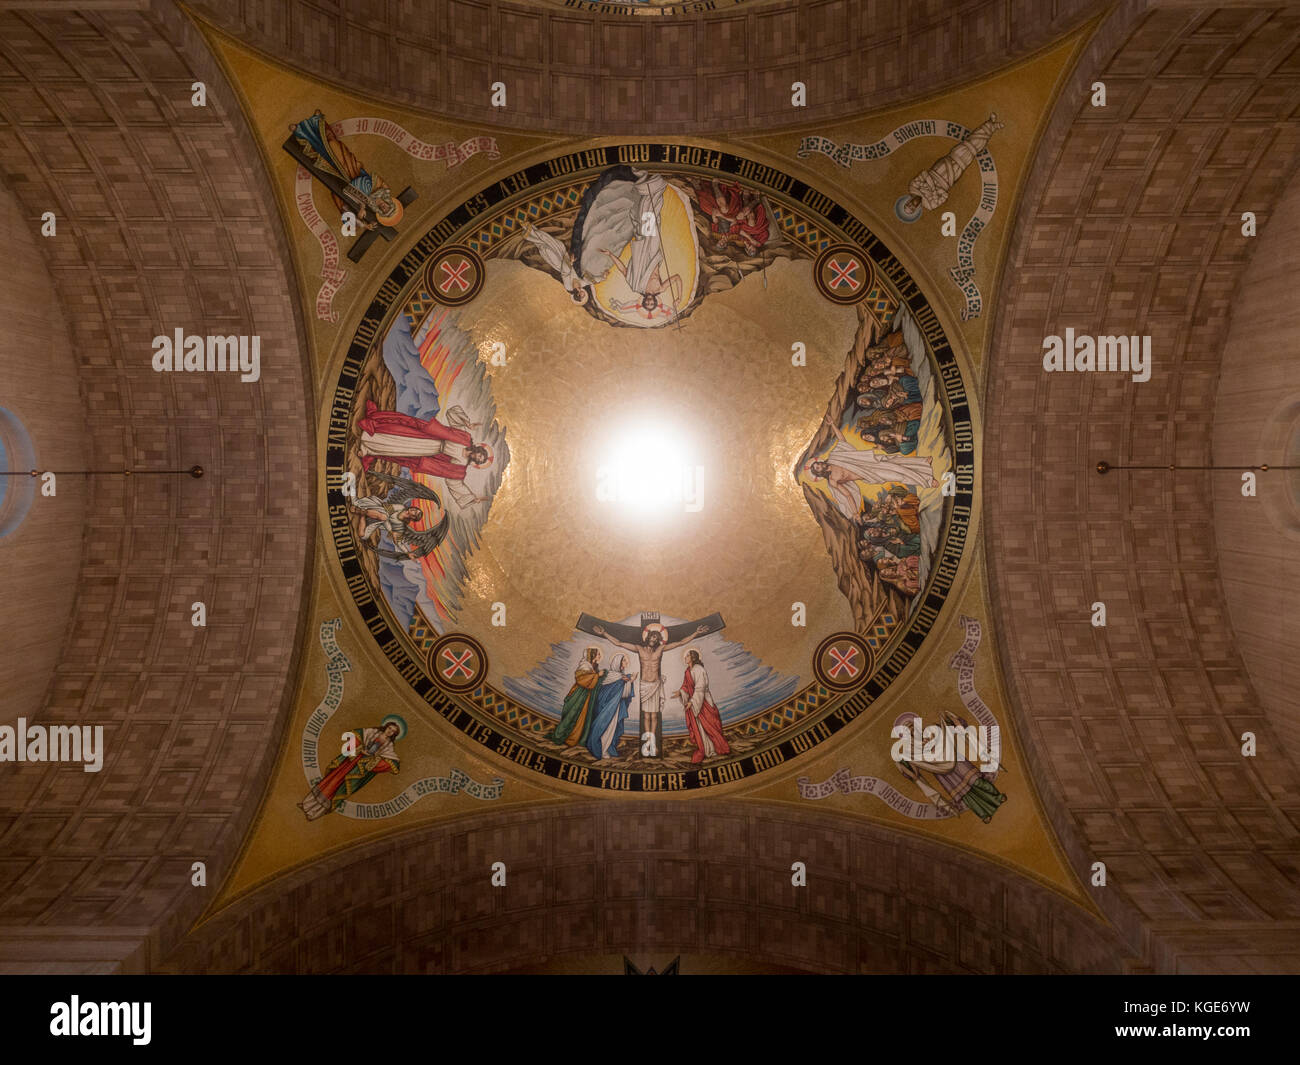 The Redemption Dome inside the Basilica of the National Shrine of the Immaculate Conception, Washington DC, United - Stock Image